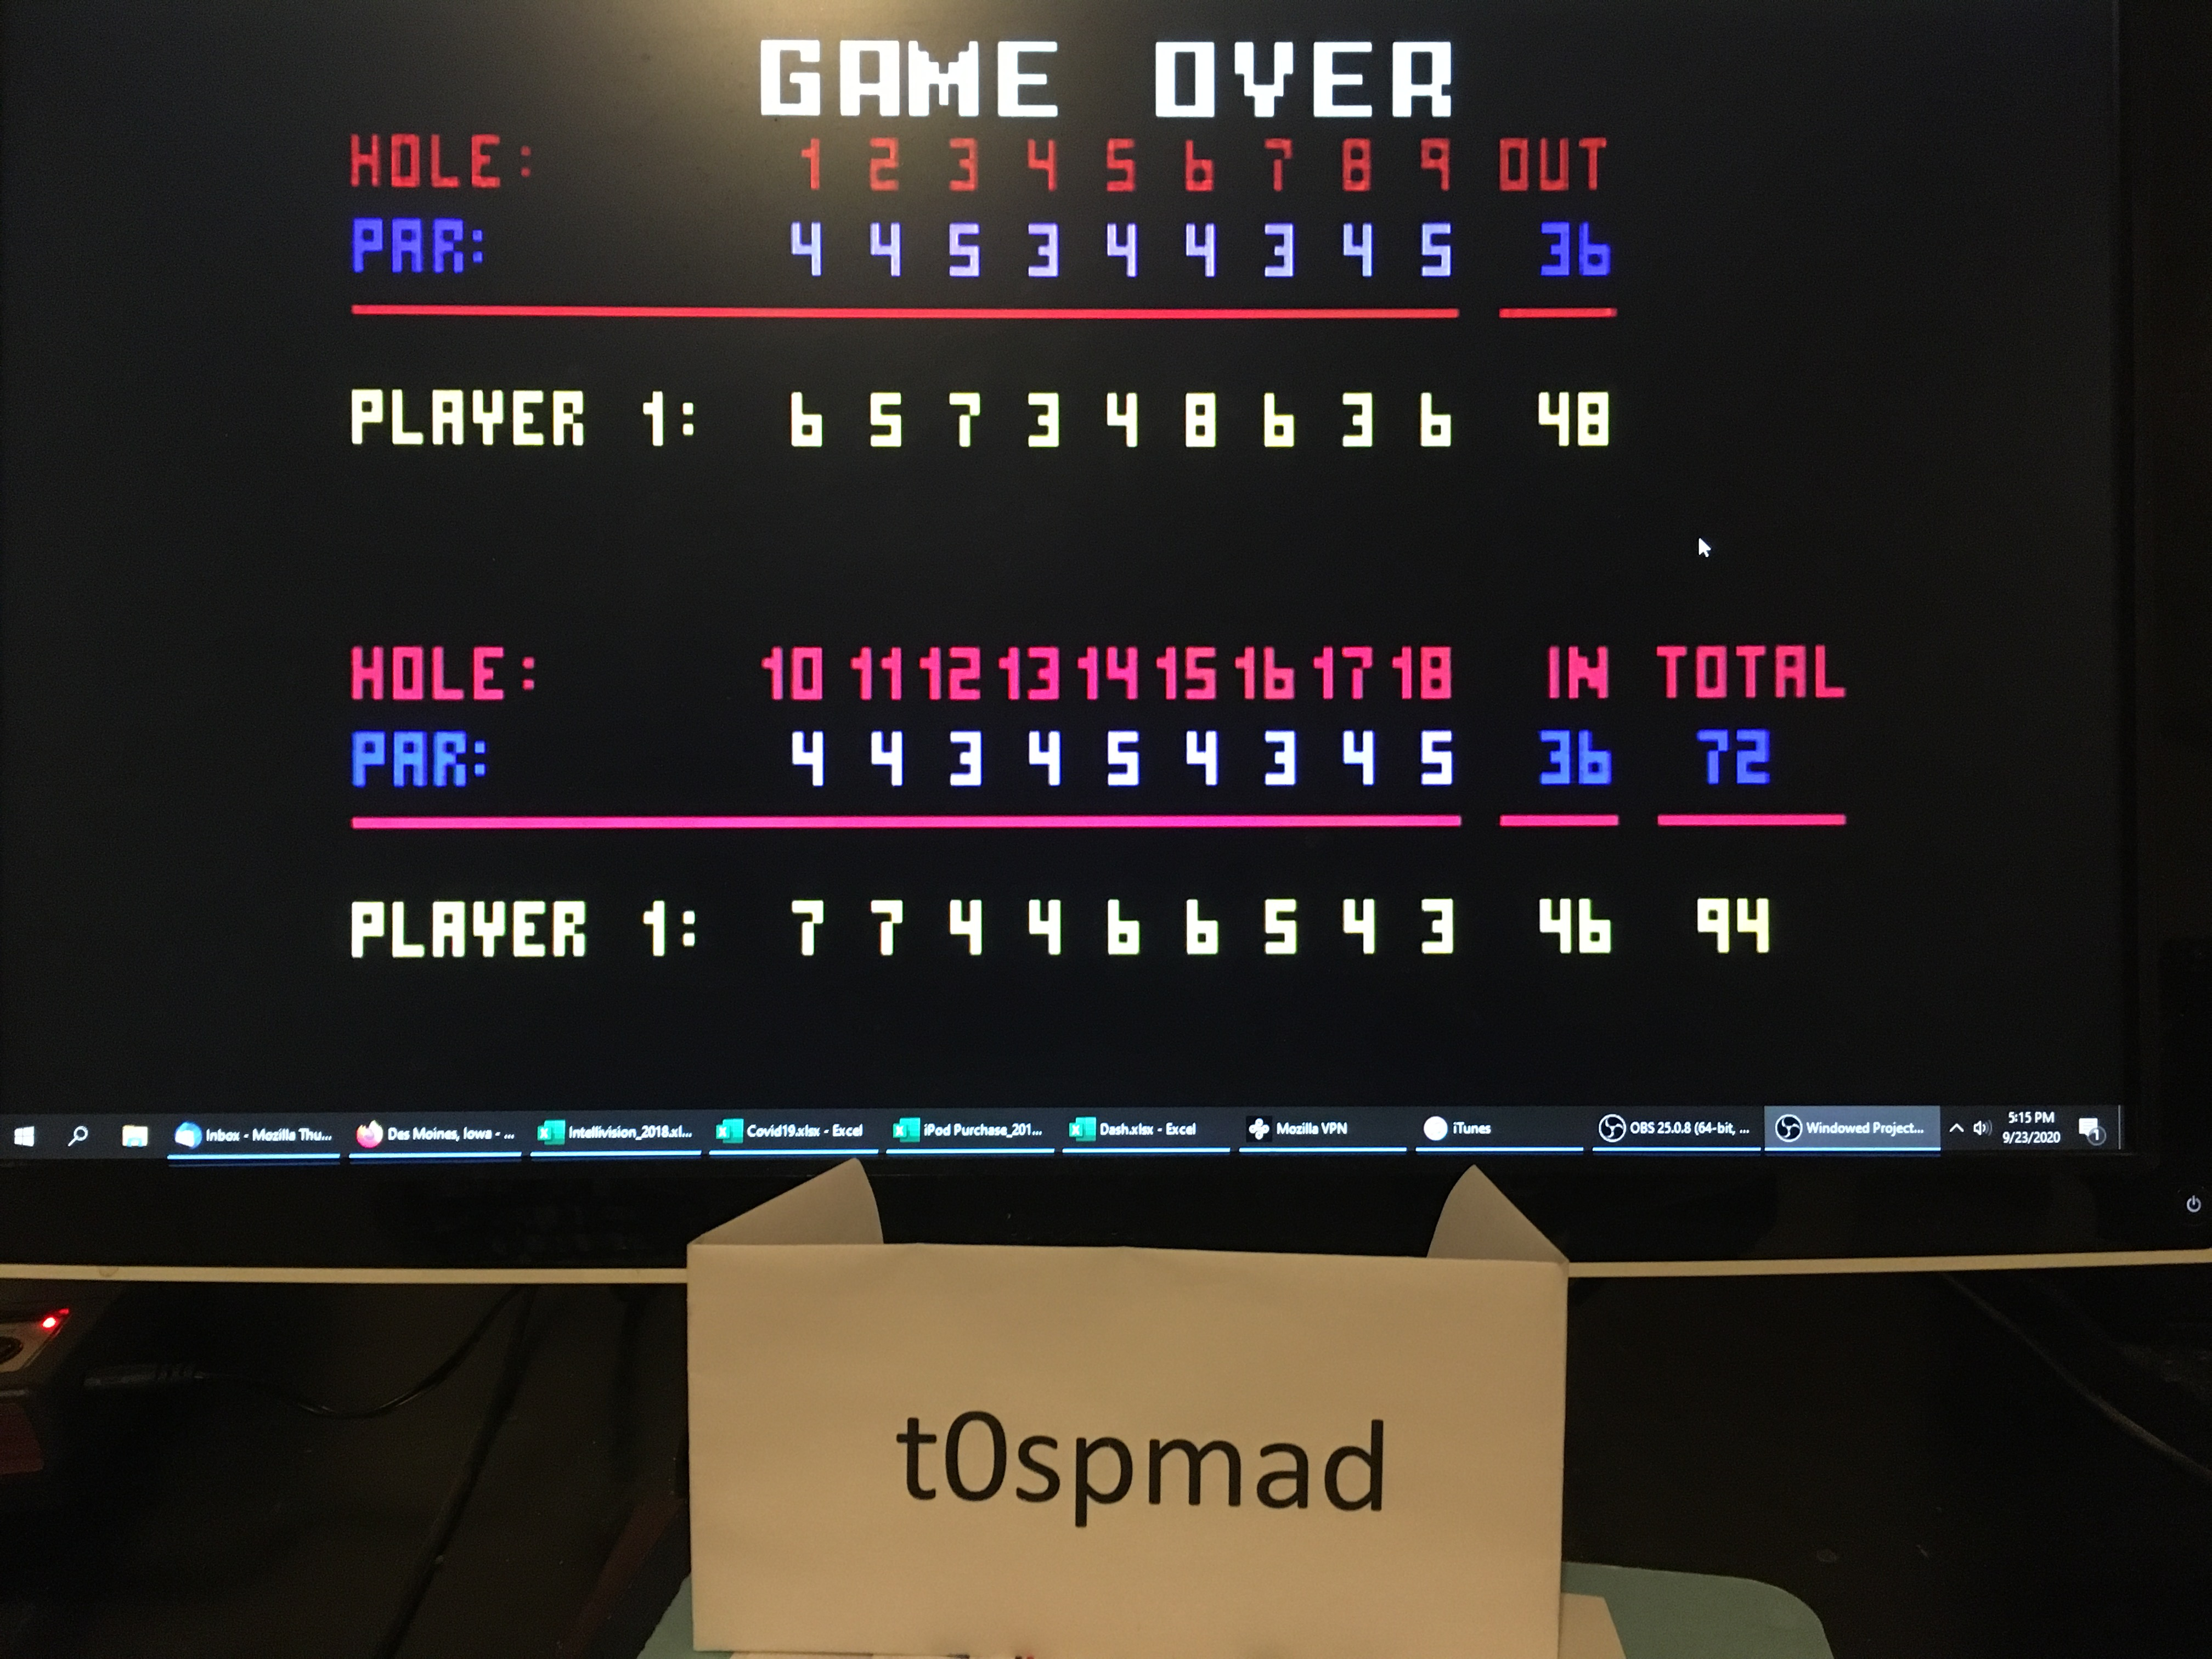 t0spmad: Chip Shot: Super Pro Golf [Classic Course: 18 Holes] (Intellivision Emulated) 94 points on 2020-09-23 17:36:28